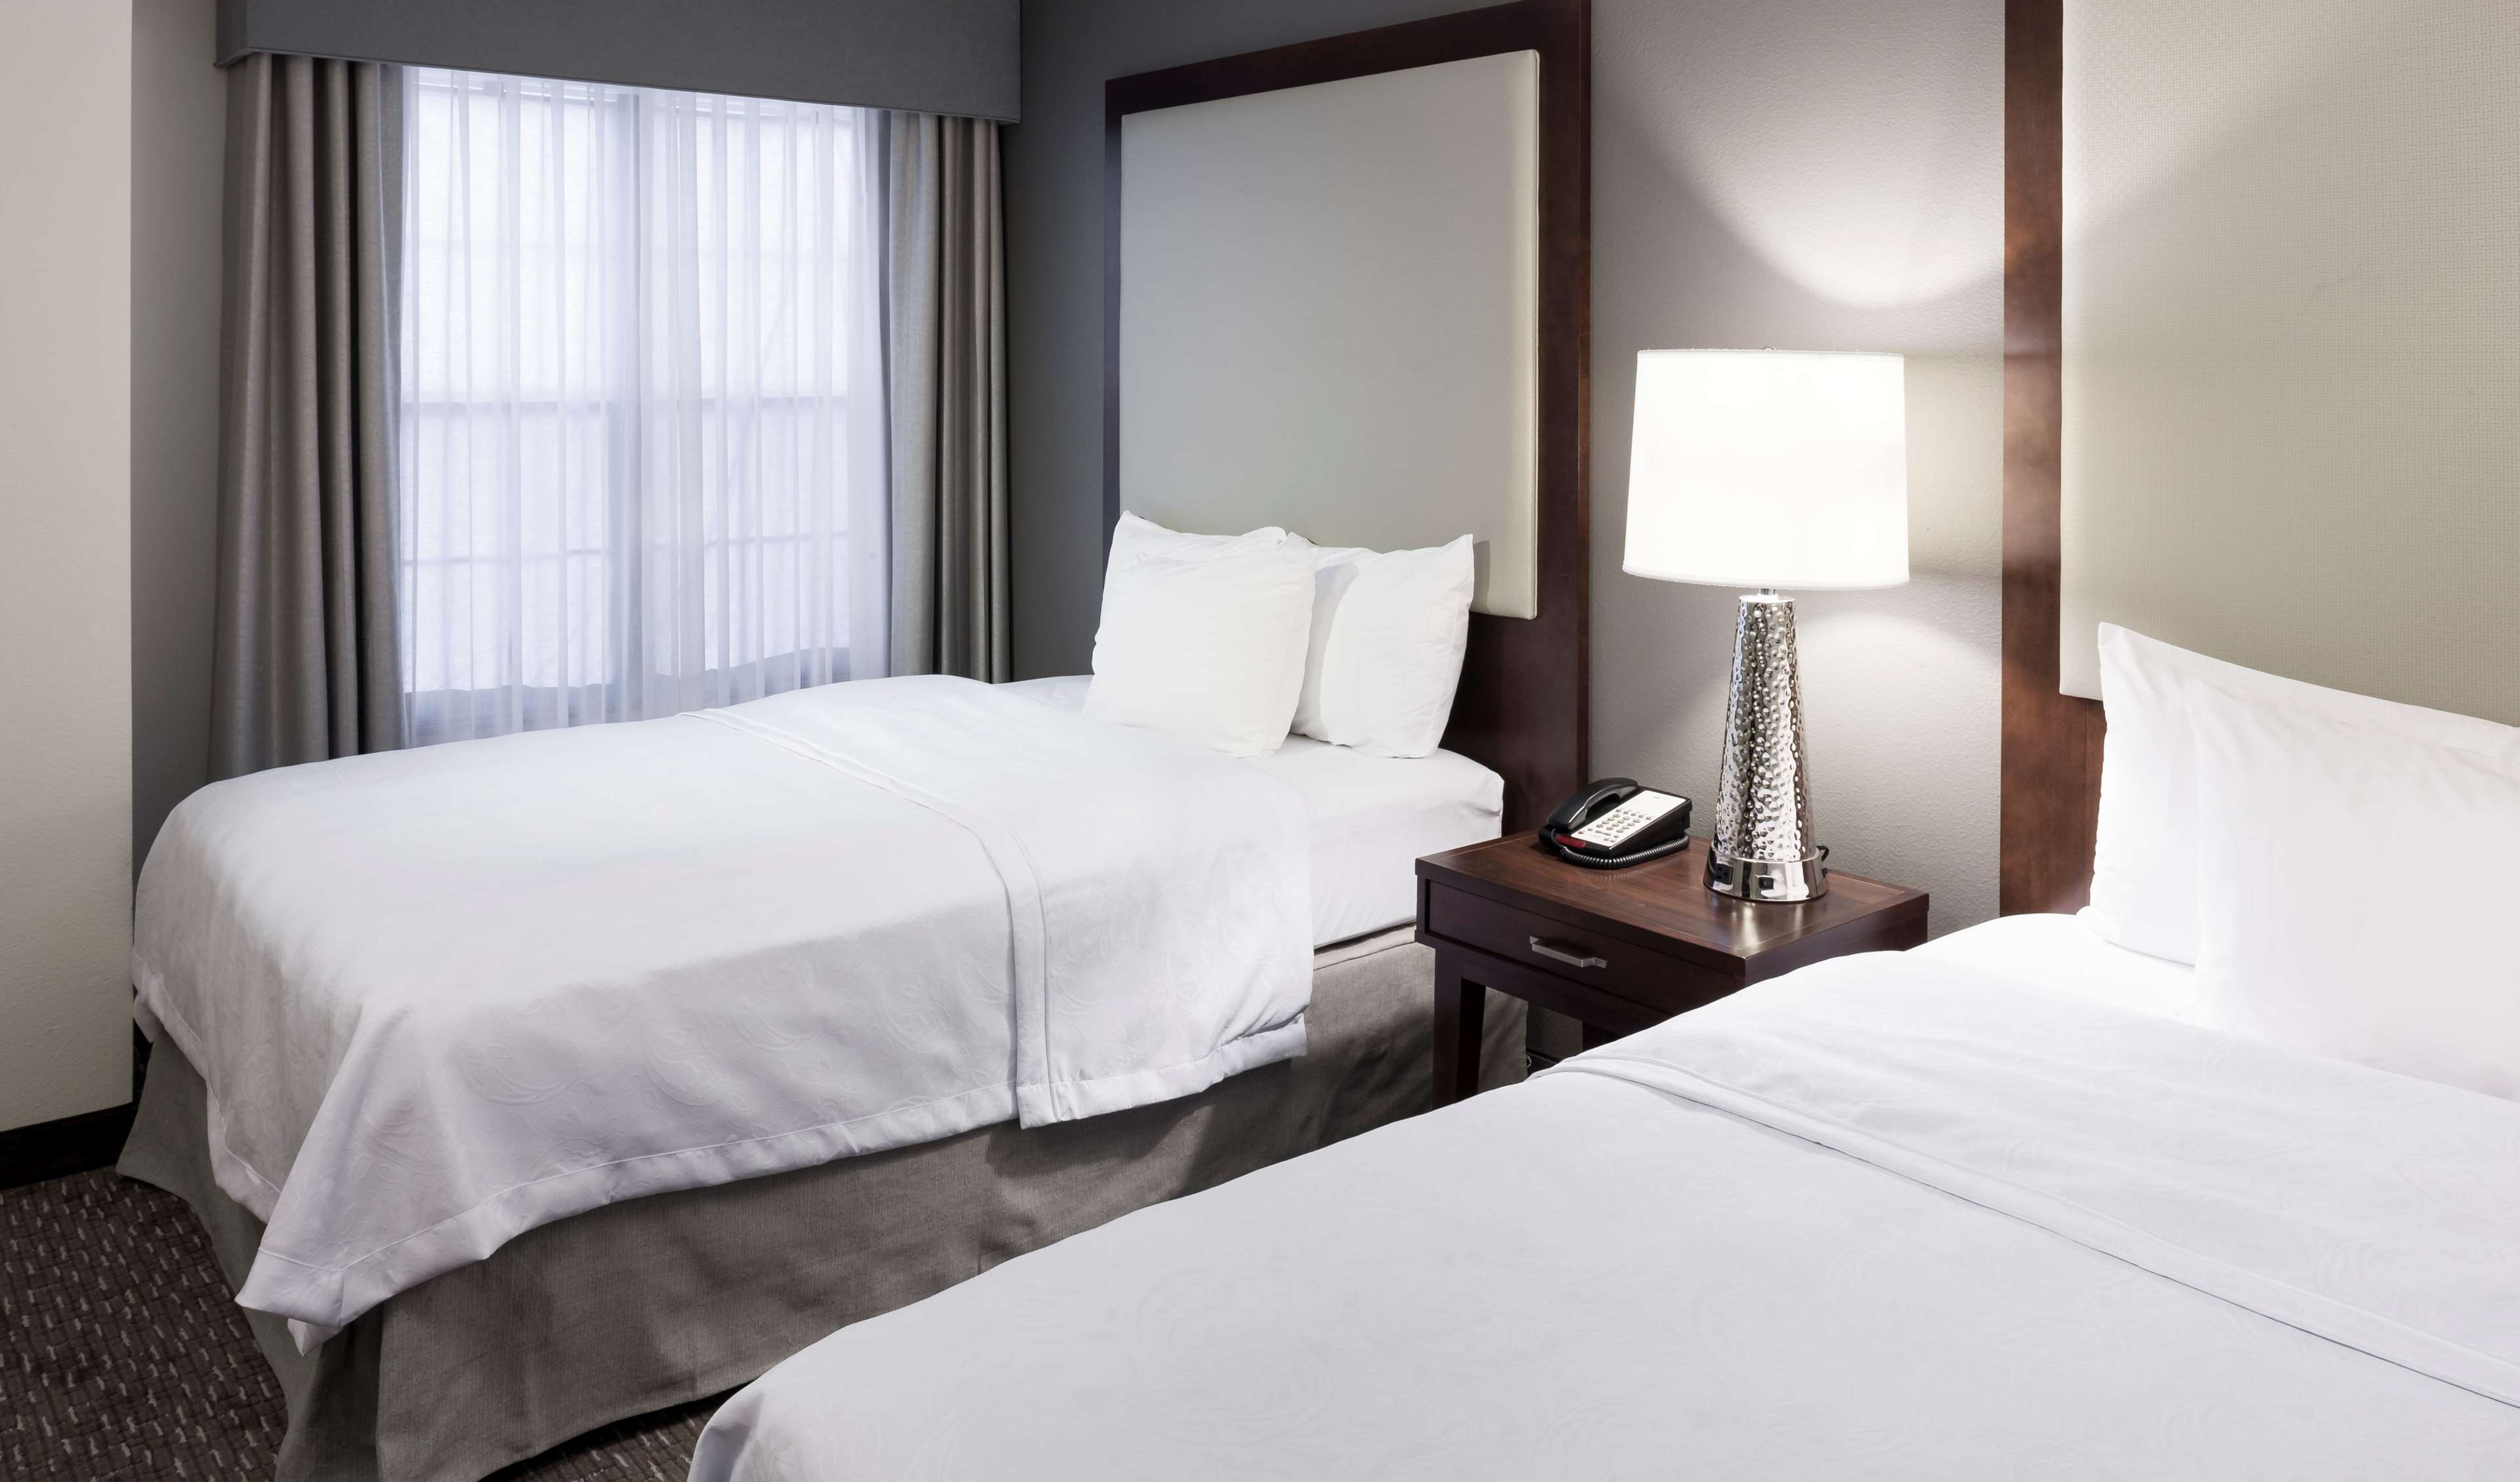 Homewood Suites by Hilton San Jose Airport-Silicon Valley image 16